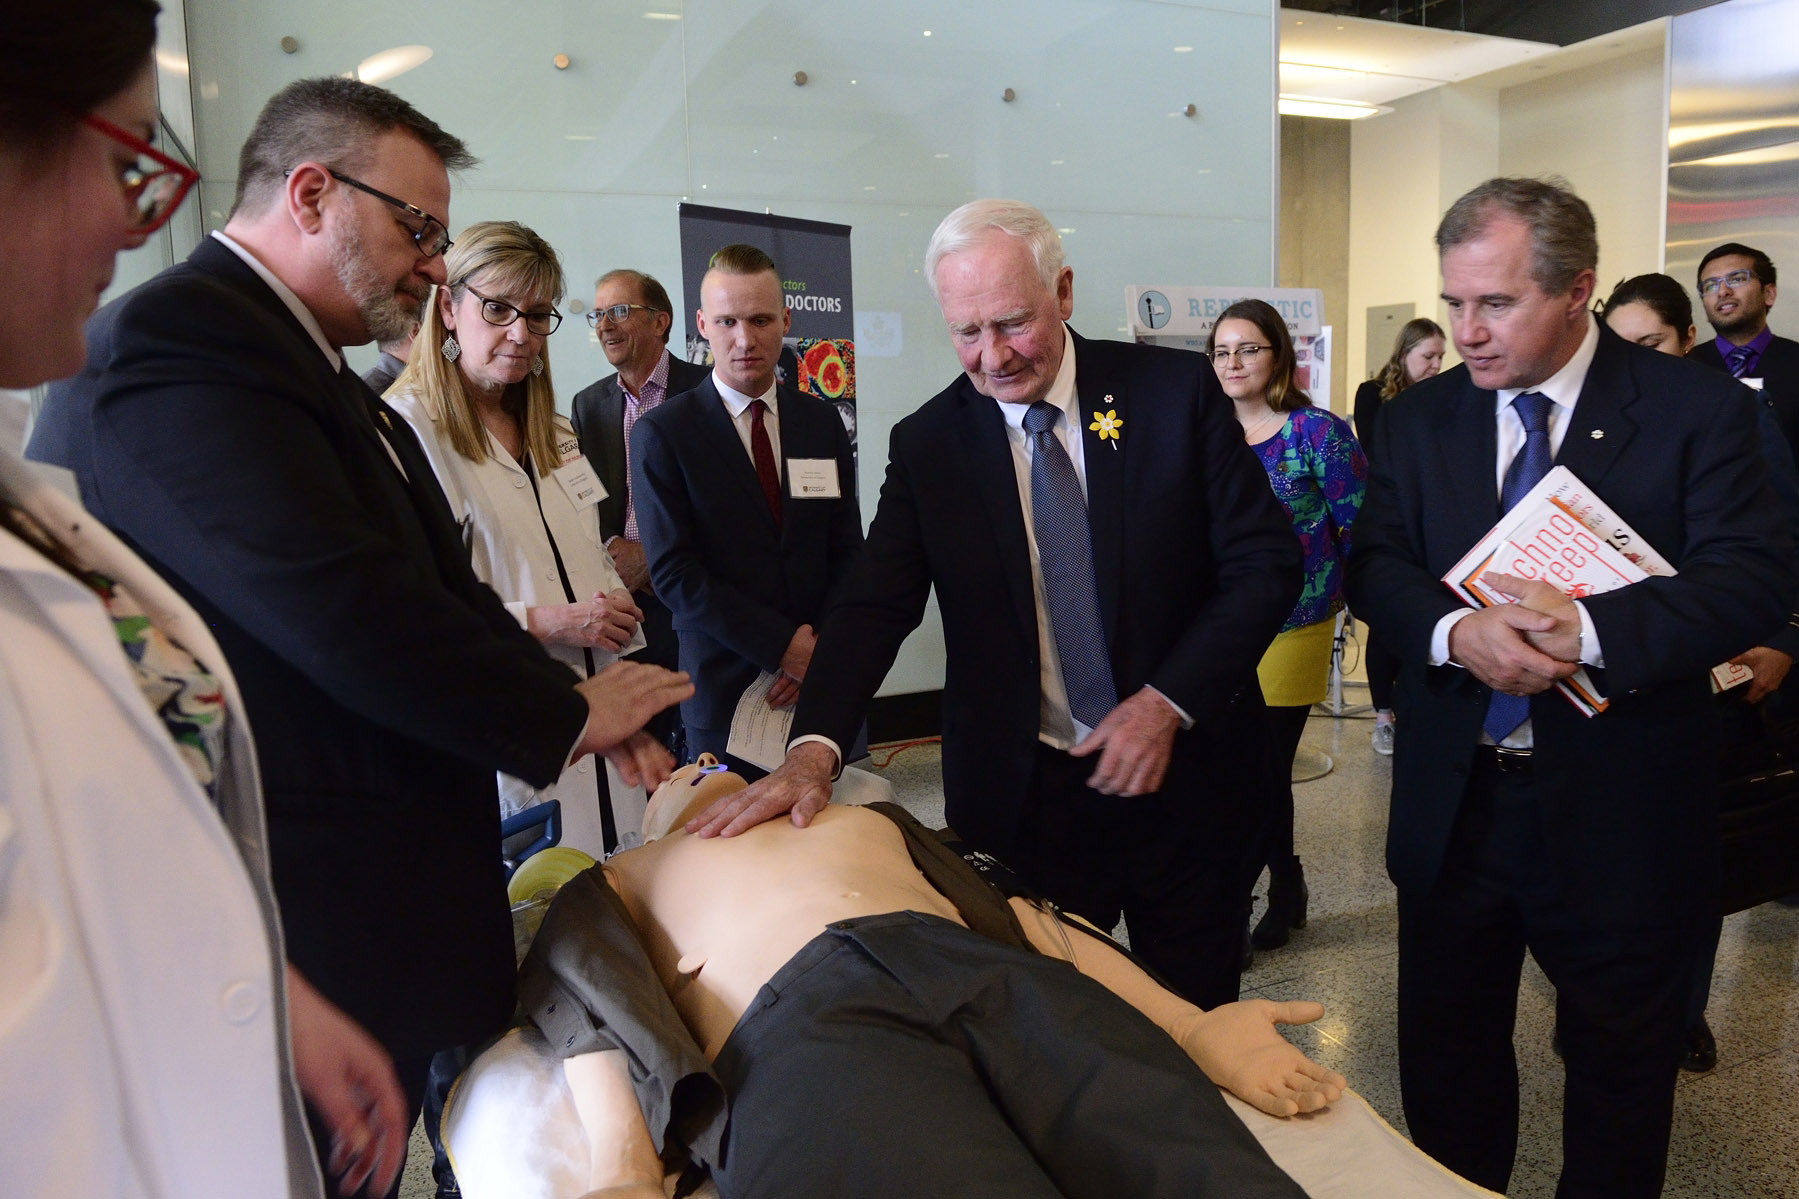 Faculty of Nursing: Staff and students demonstrated the Quality Cardiopulmonary Resuscitation (QCPR) manikin trainer that gives students real time feedback on their resuscitation skills which could directly impact patient care.